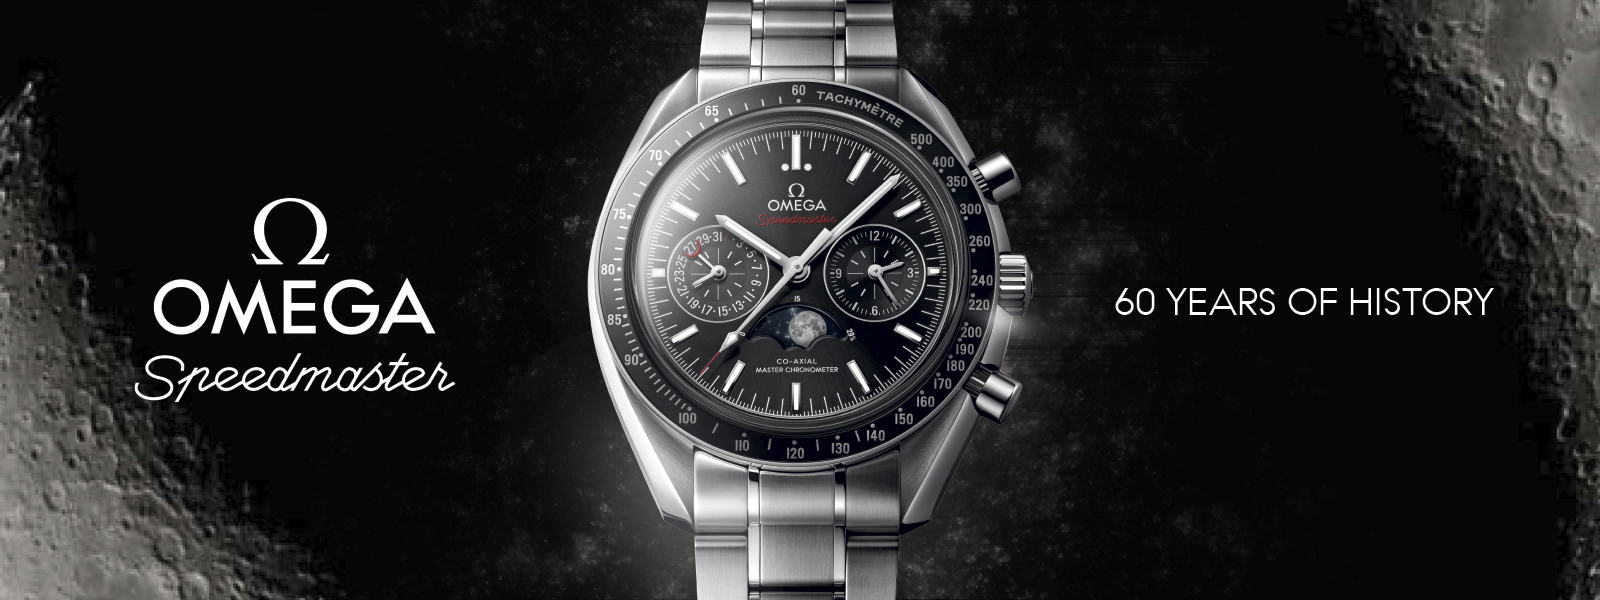 now omega five speedmaster top the there watches right out models